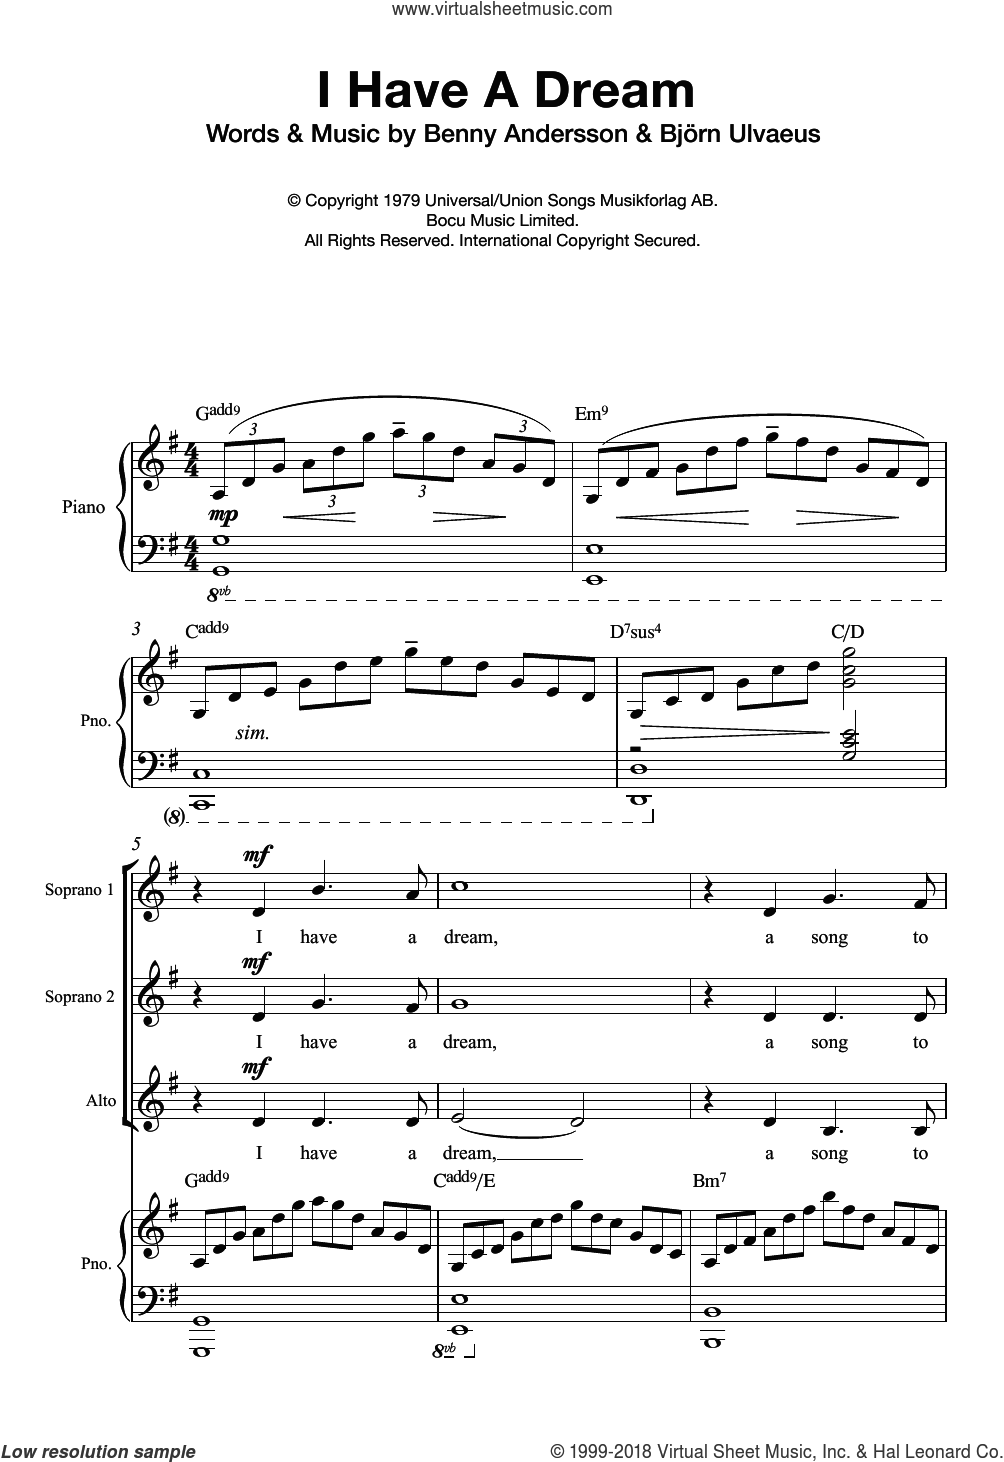 I Have A Dream (Arr. Quentin Thomas) sheet music for choir and piano by Benny Andersson, ABBA, Westlife and Bjorn Ulvaeus. Score Image Preview.